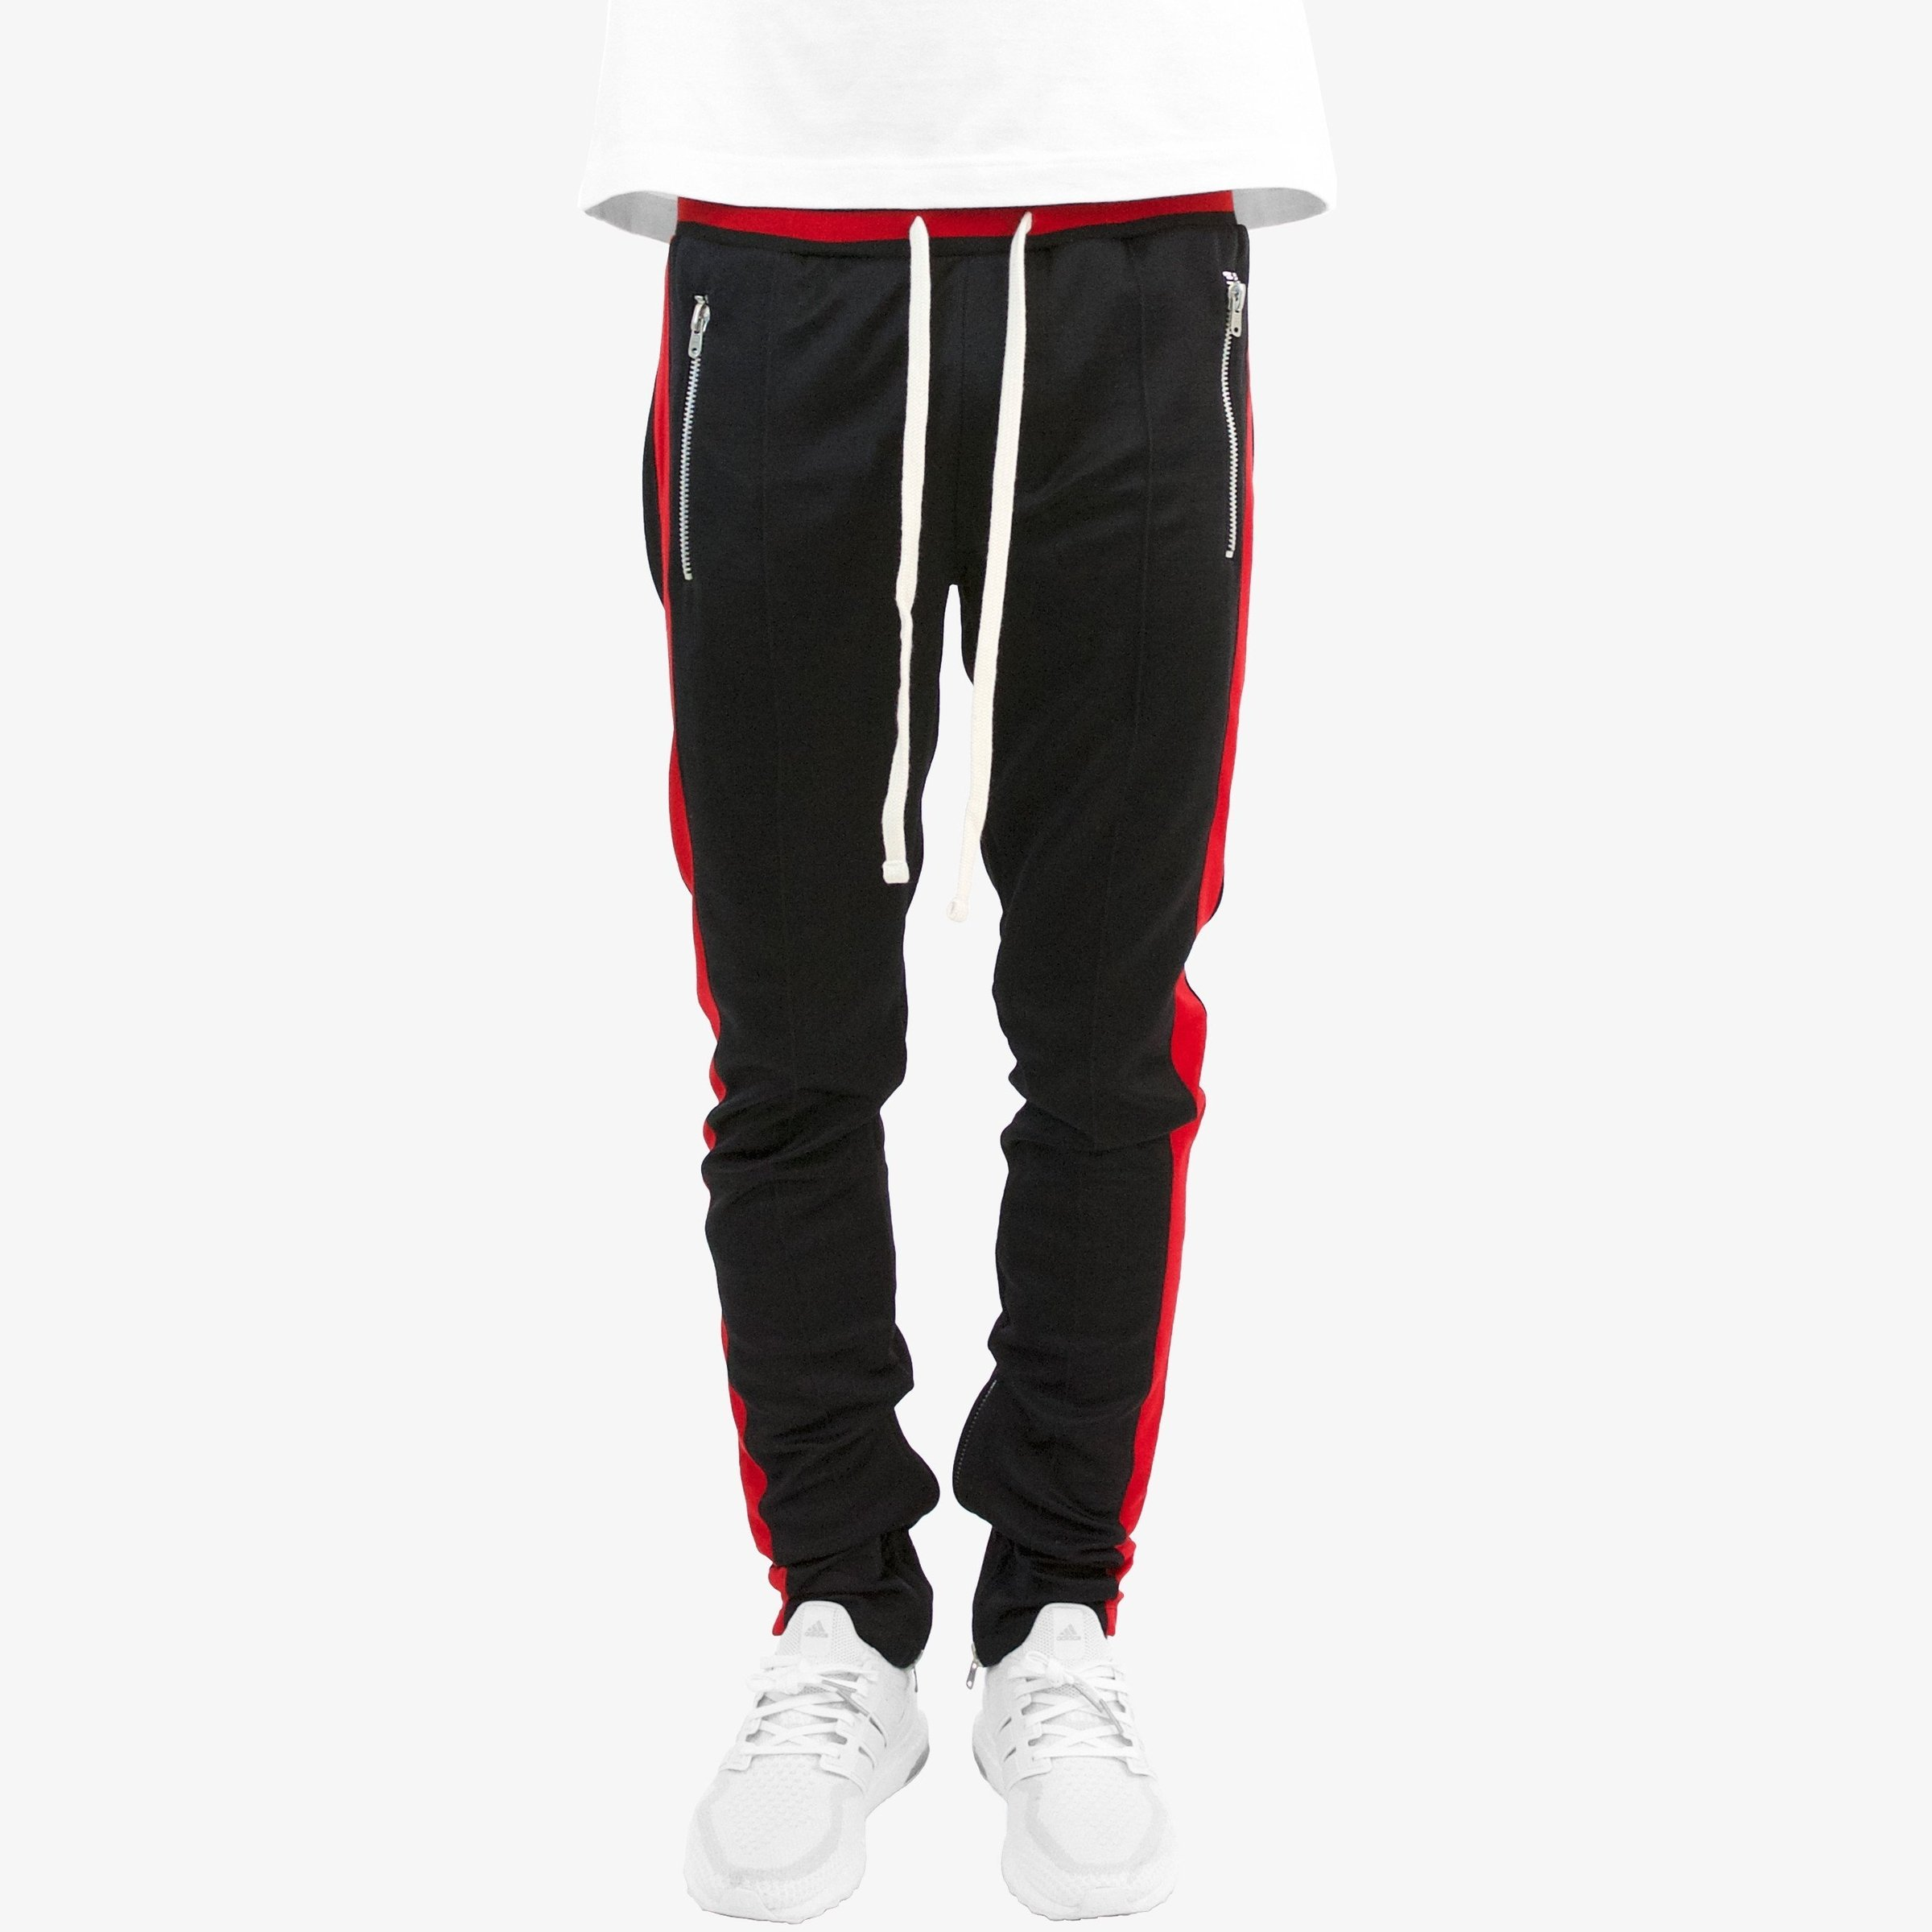 Foolproof guide on how to buy track pants